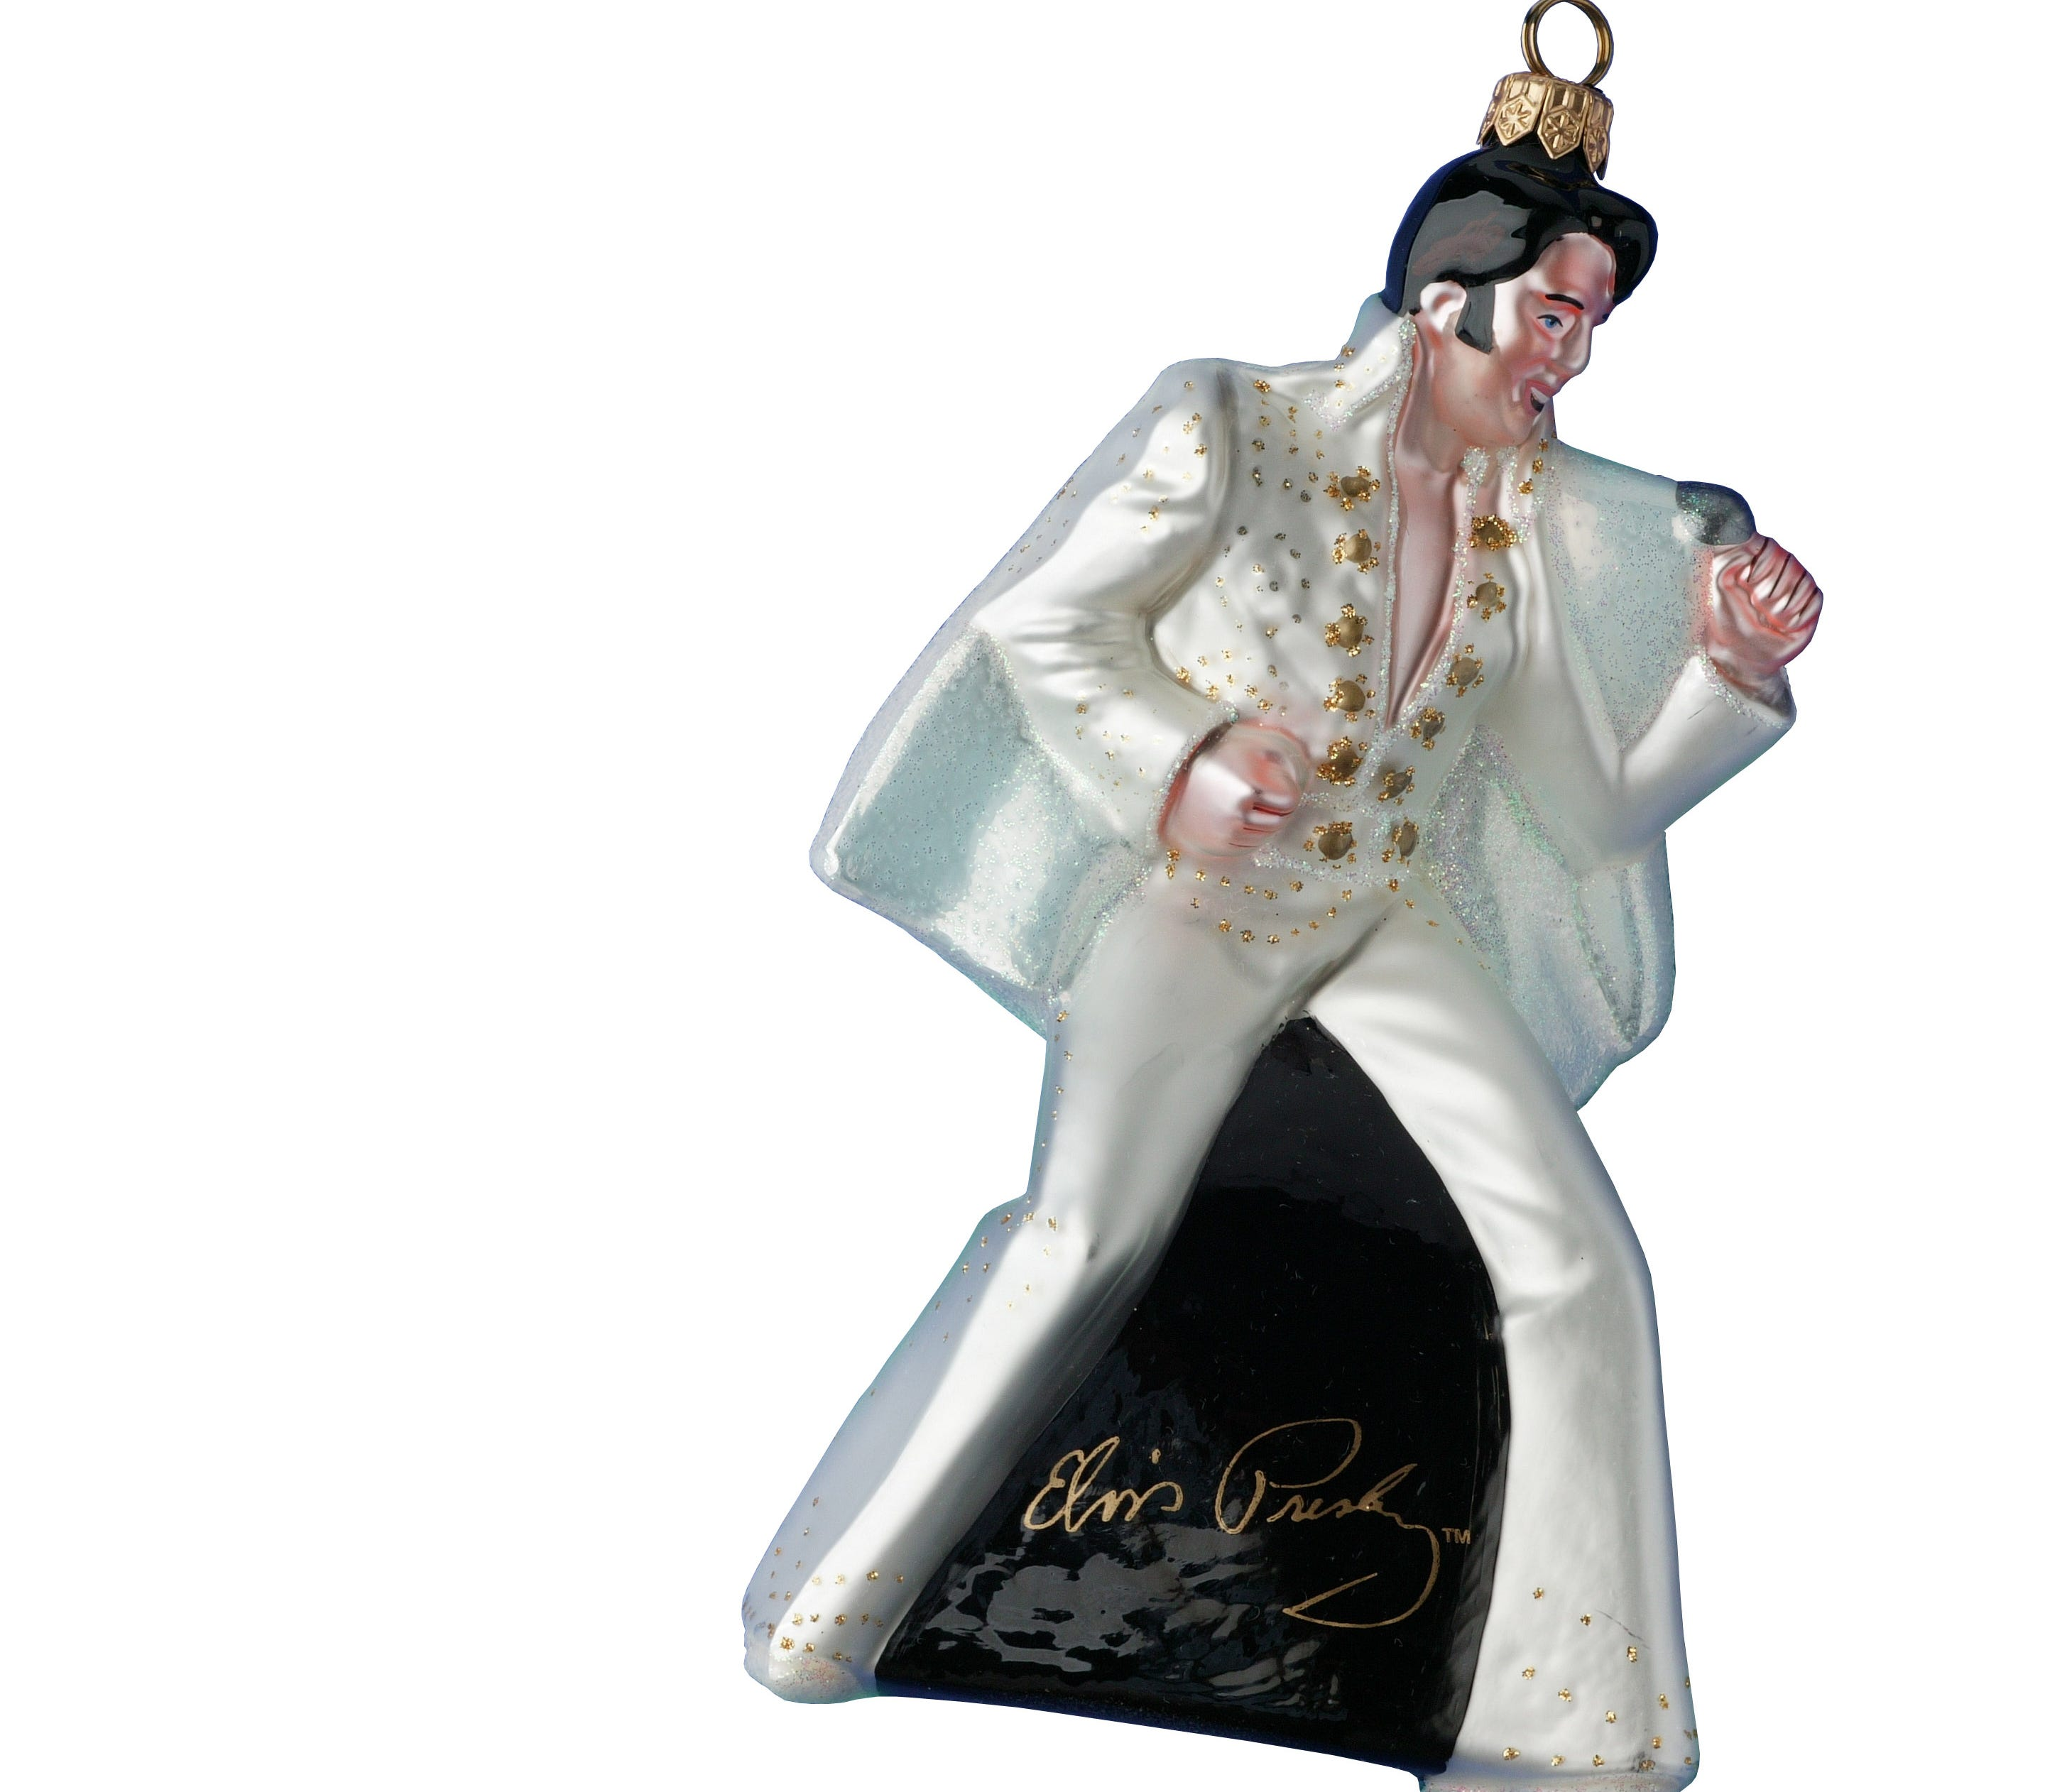 260 | Licensees. All kinds of Elvis merchandise is made, from apparel and apps to Barbie dolls and bobbleheads. This glass Elvis Christmas ornament was made in Poland.